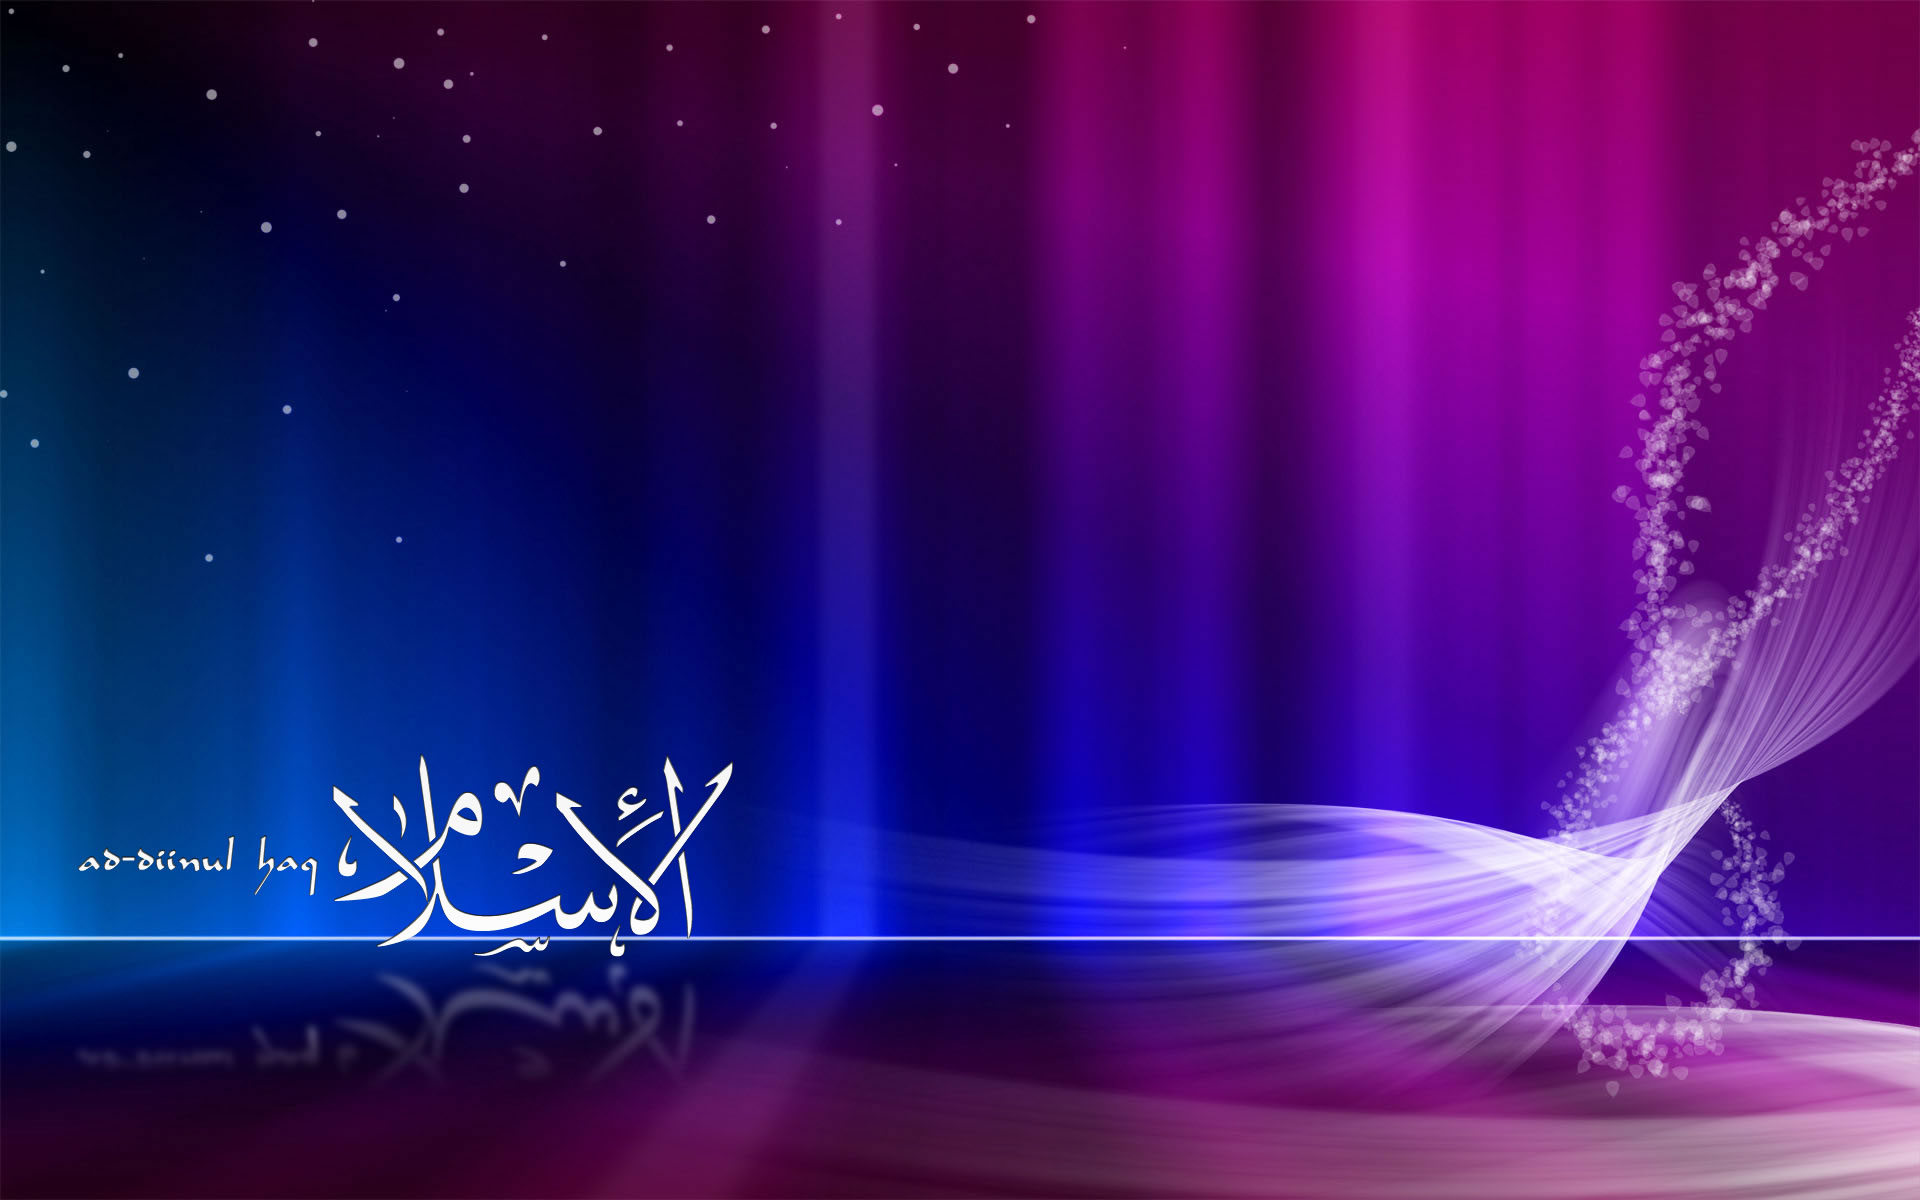 Islamic wallpapers pictures images - Islamic background wallpaper ...